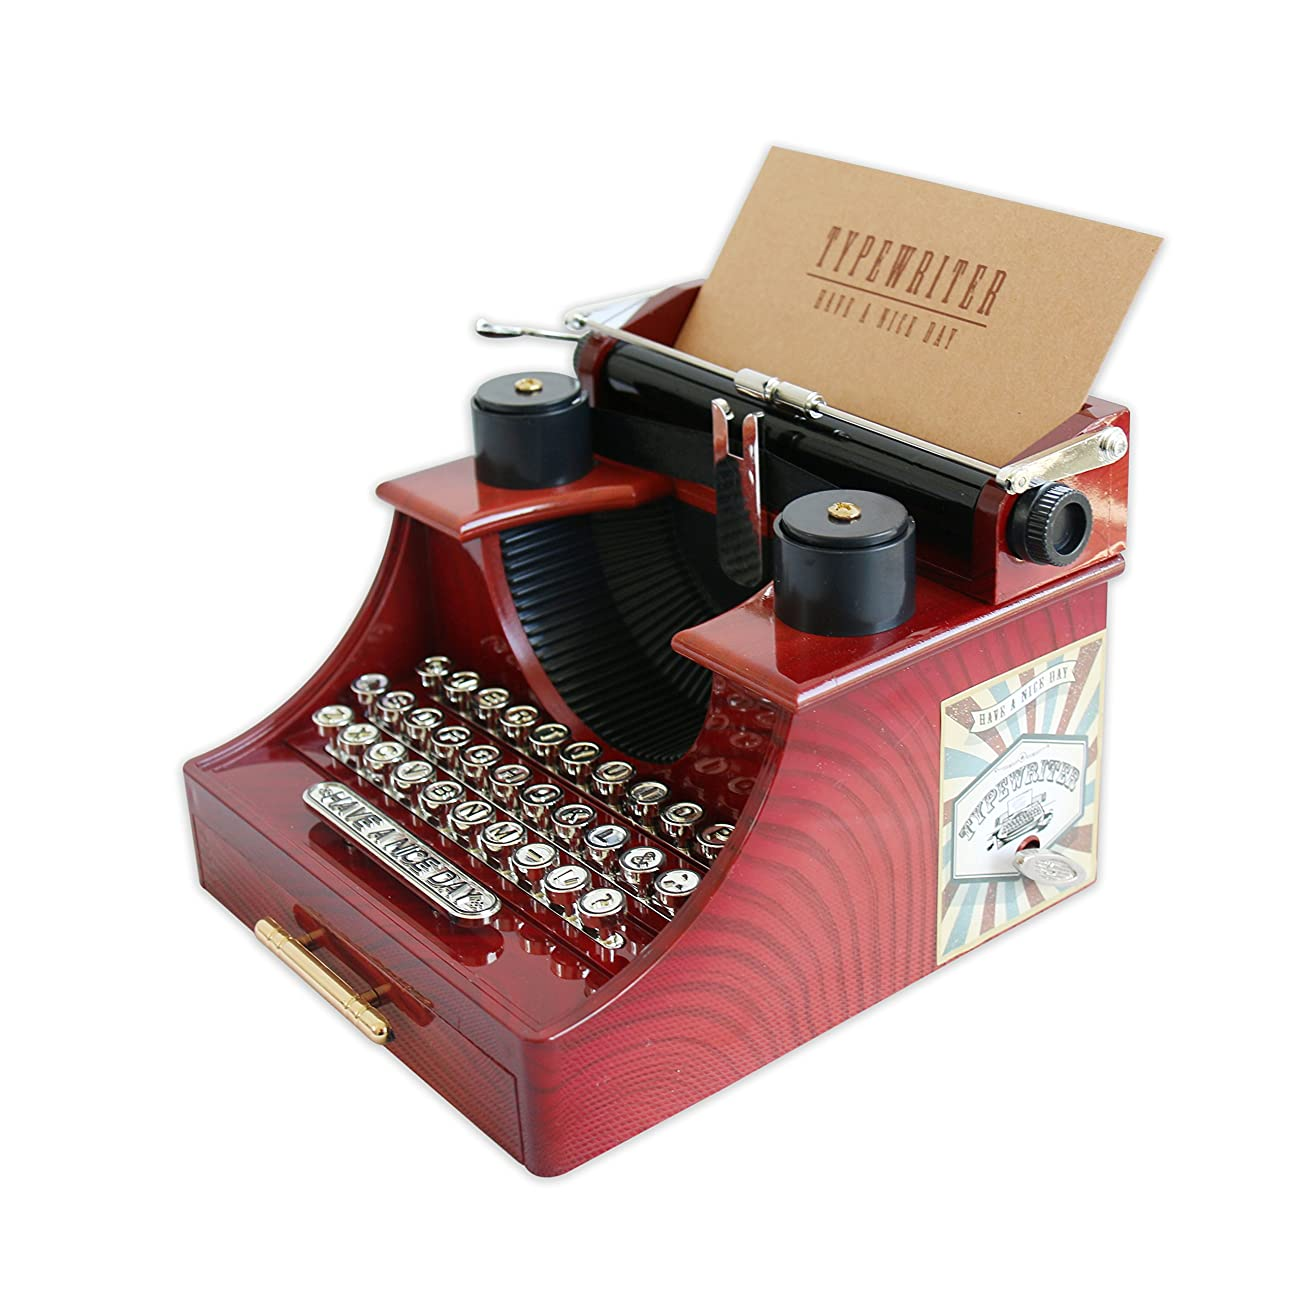 Alytimes Vintage Typewriter Music Box for Home/Office/Study Room Décor Decoration 4